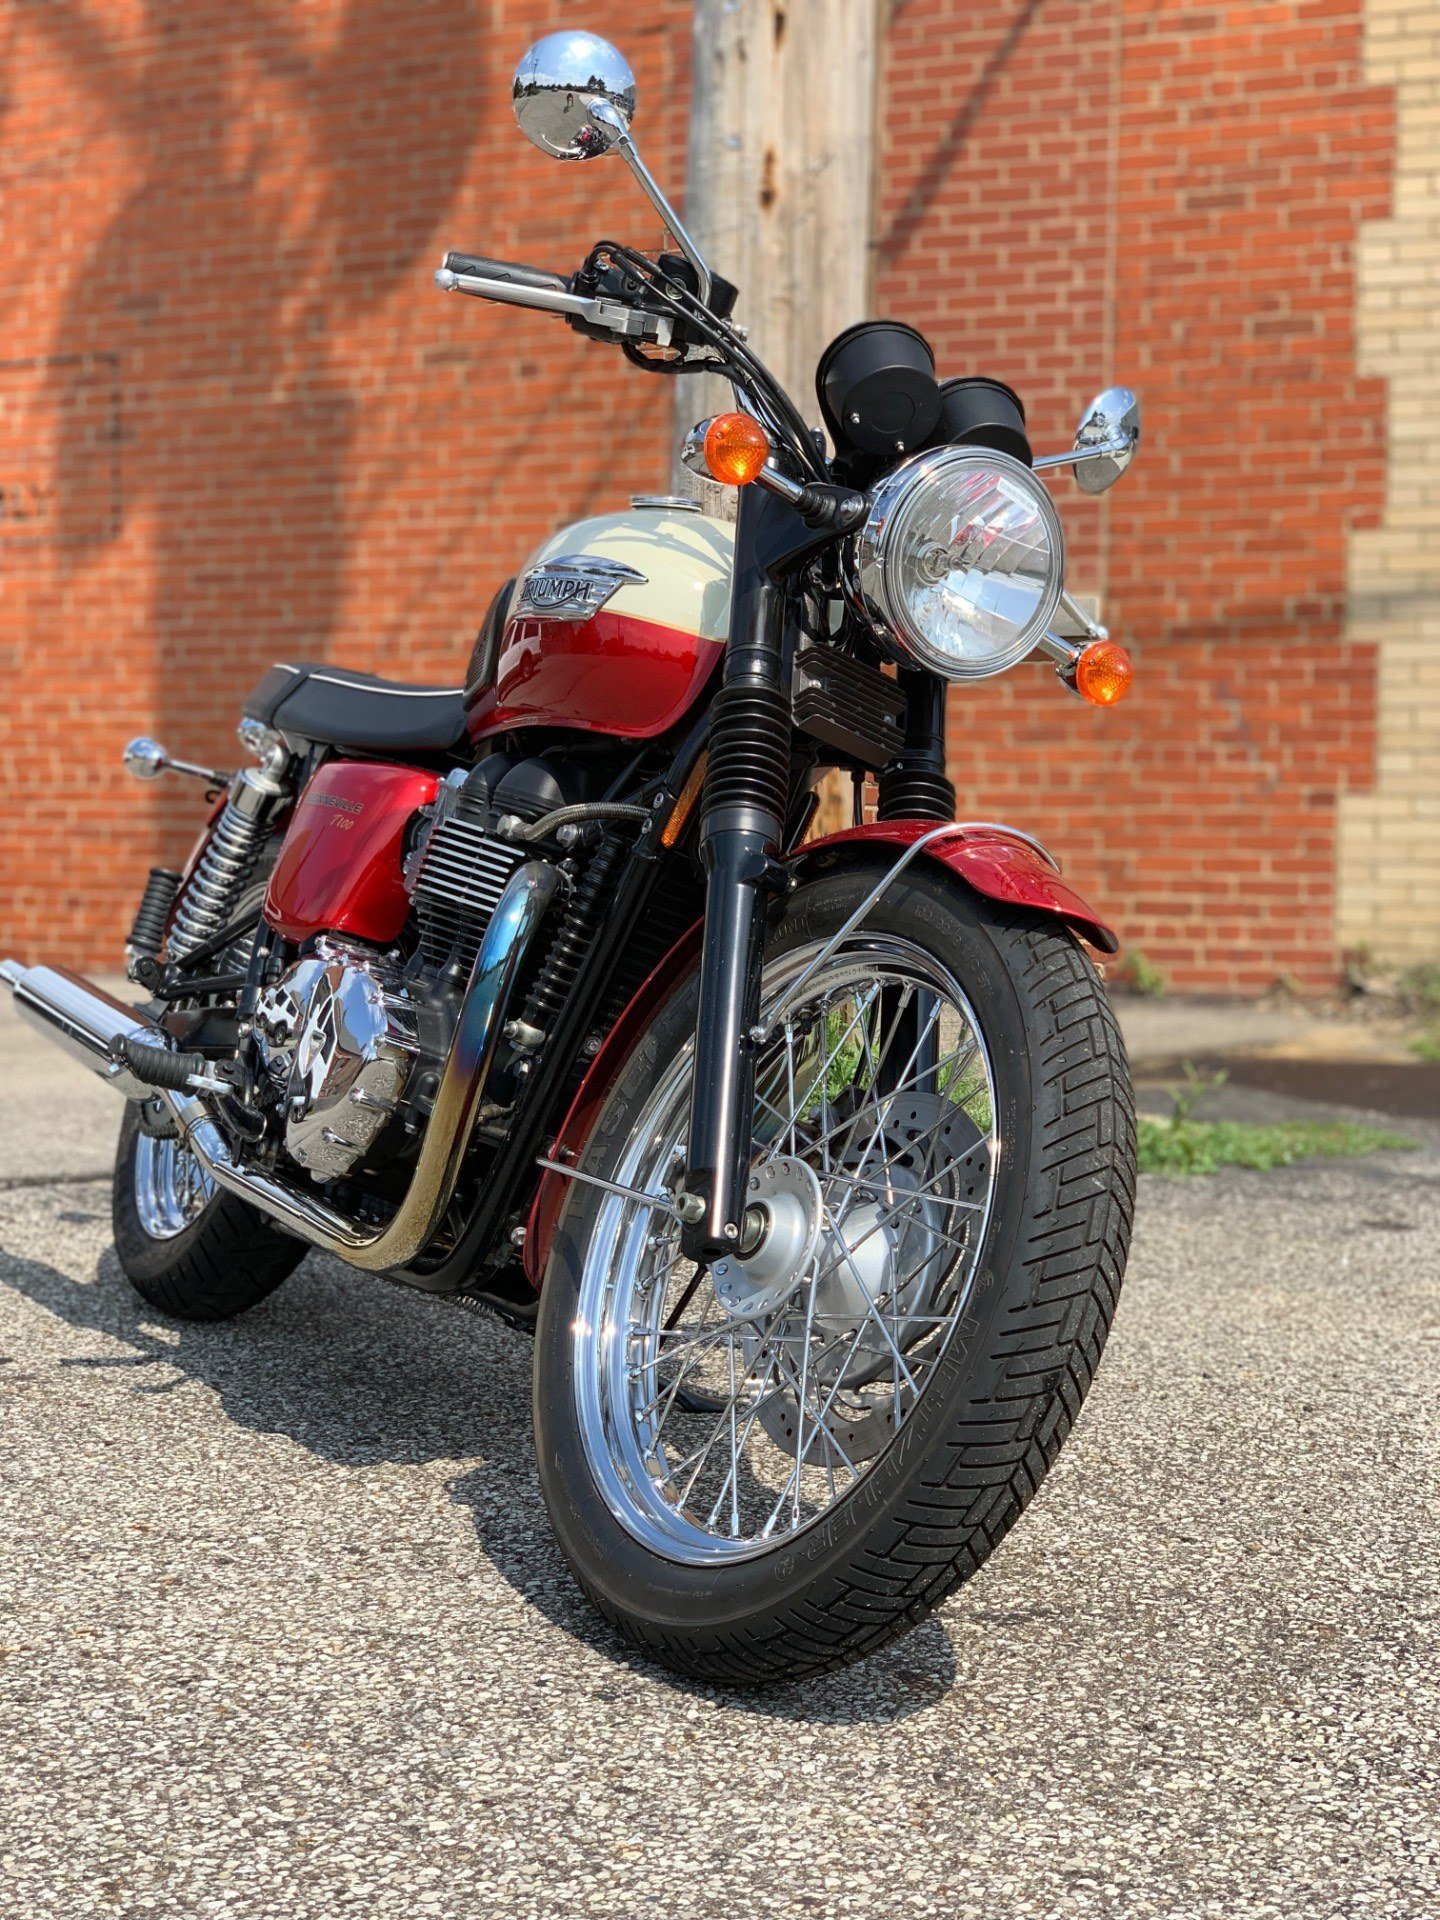 2012 Triumph Bonneville T100 - Cranberry / New England White in Cleveland, Ohio - Photo 2